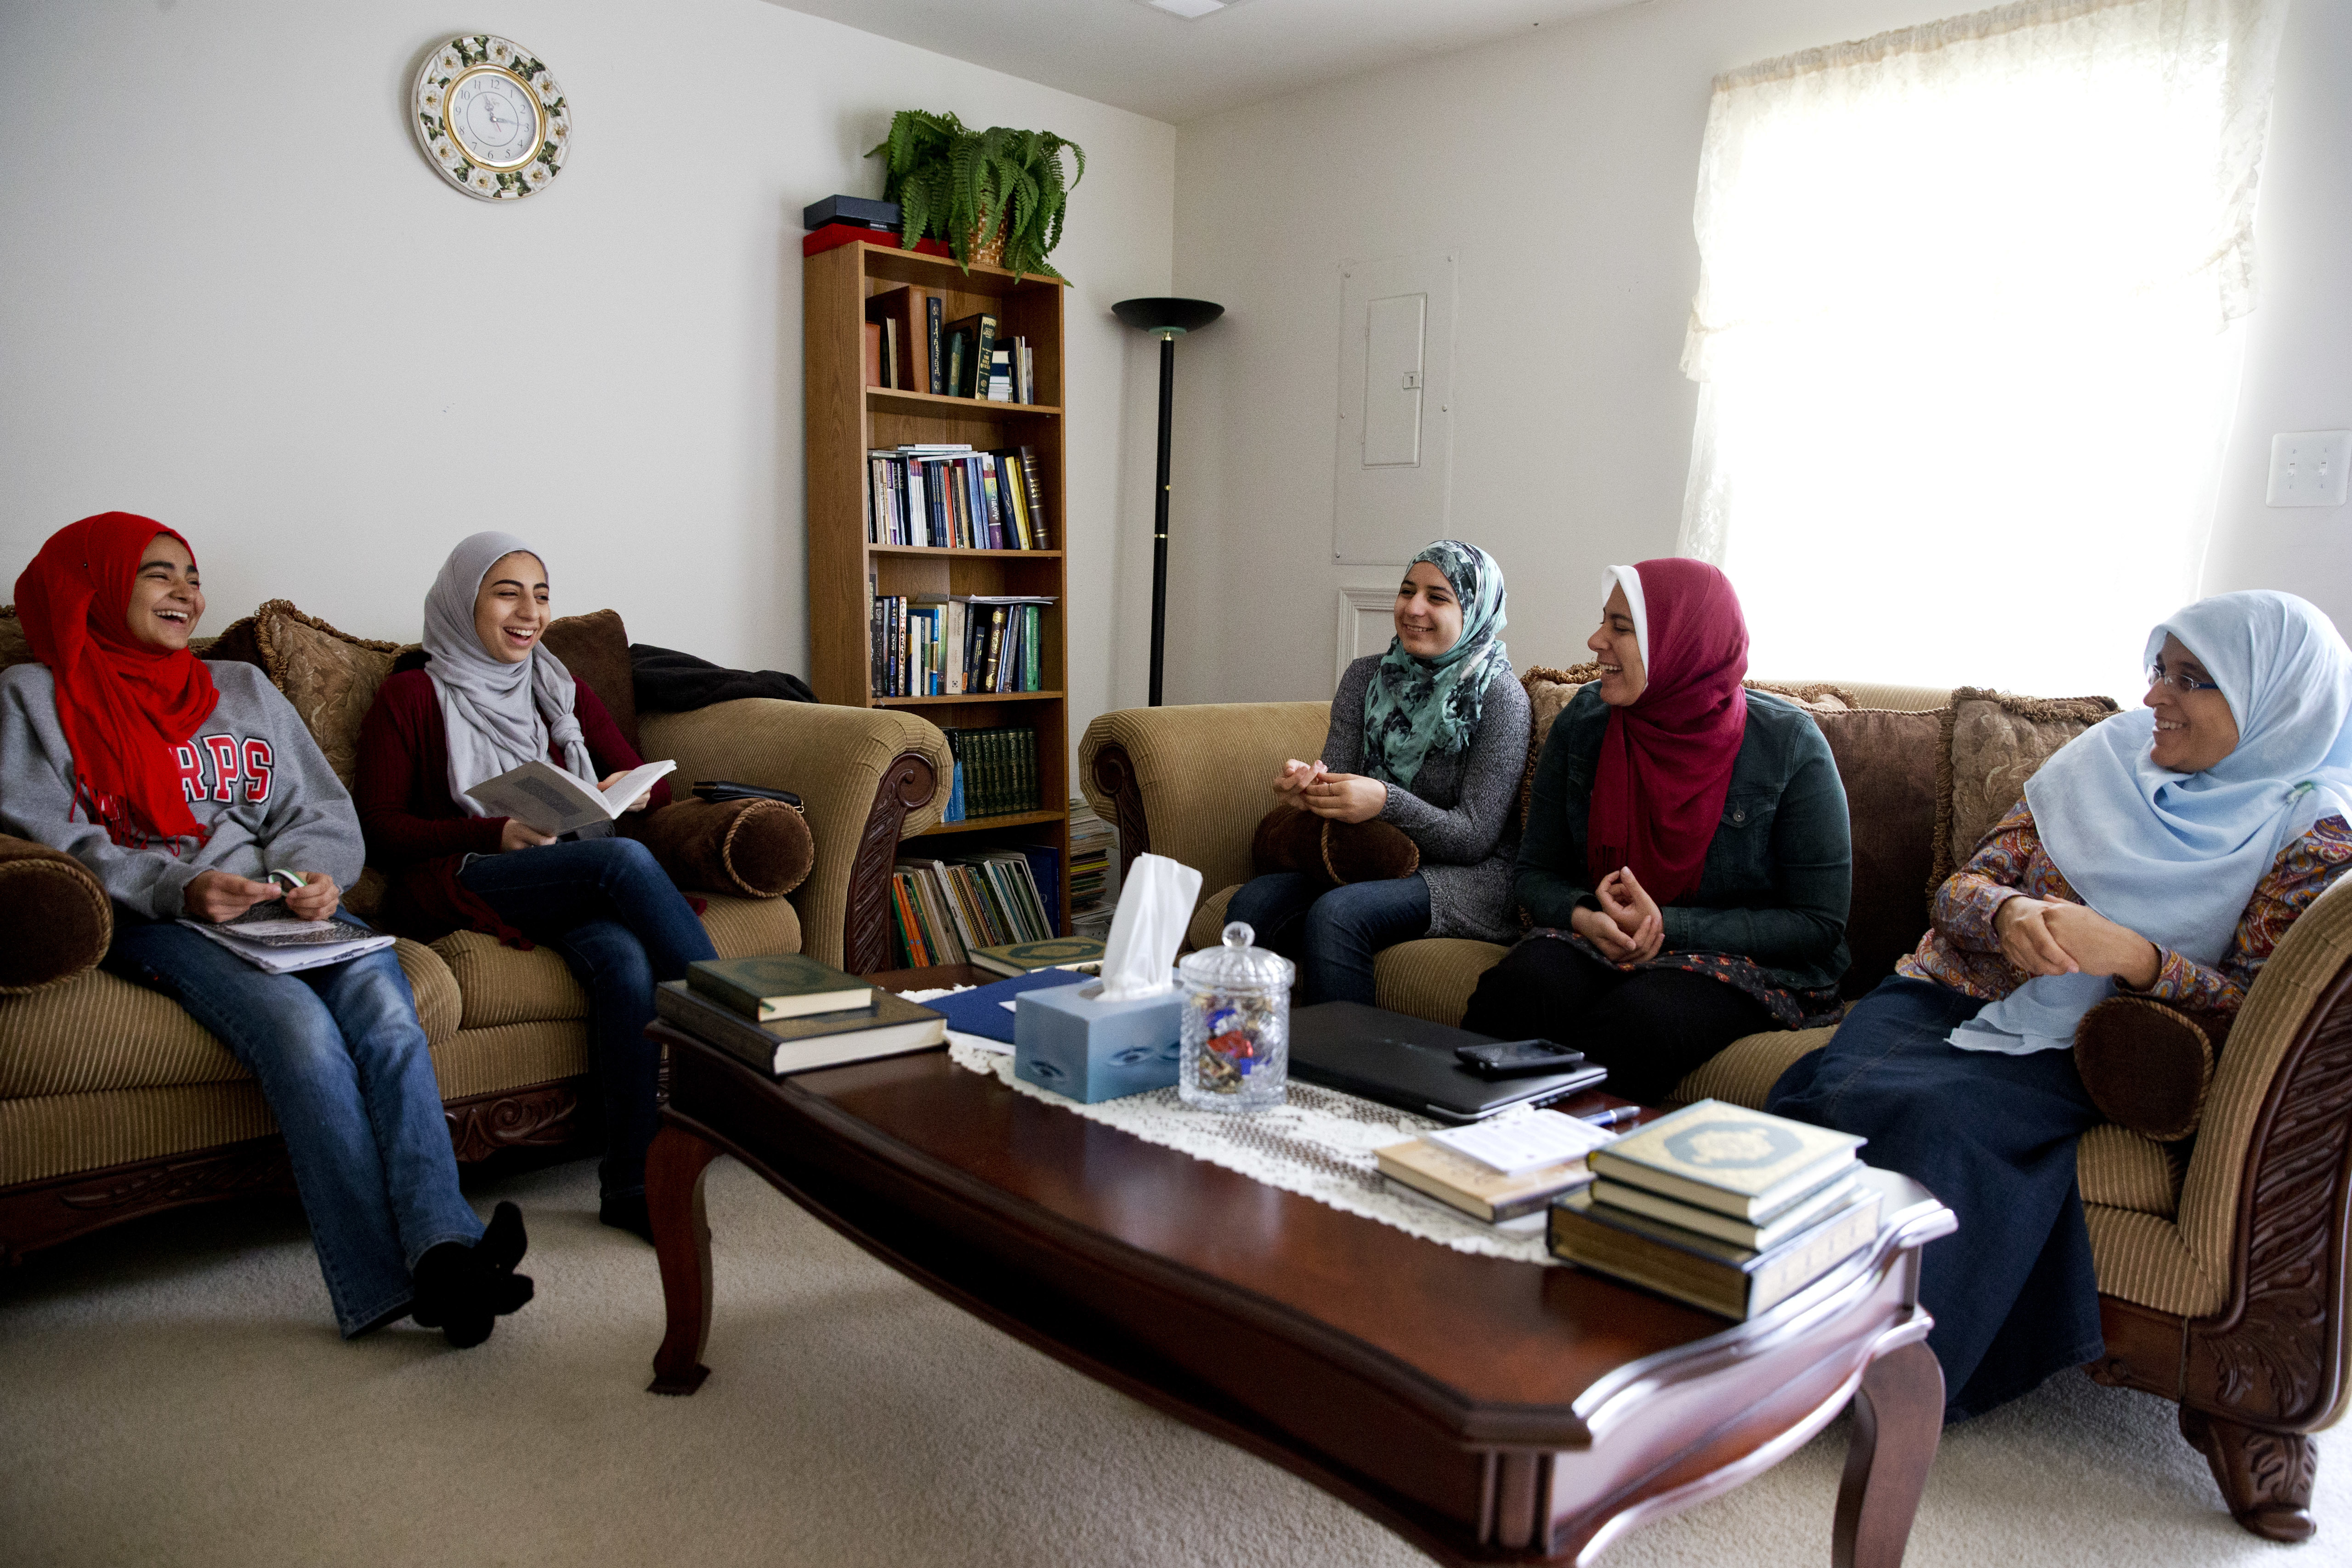 There is a large and diverse Muslim community in the U.S. today.